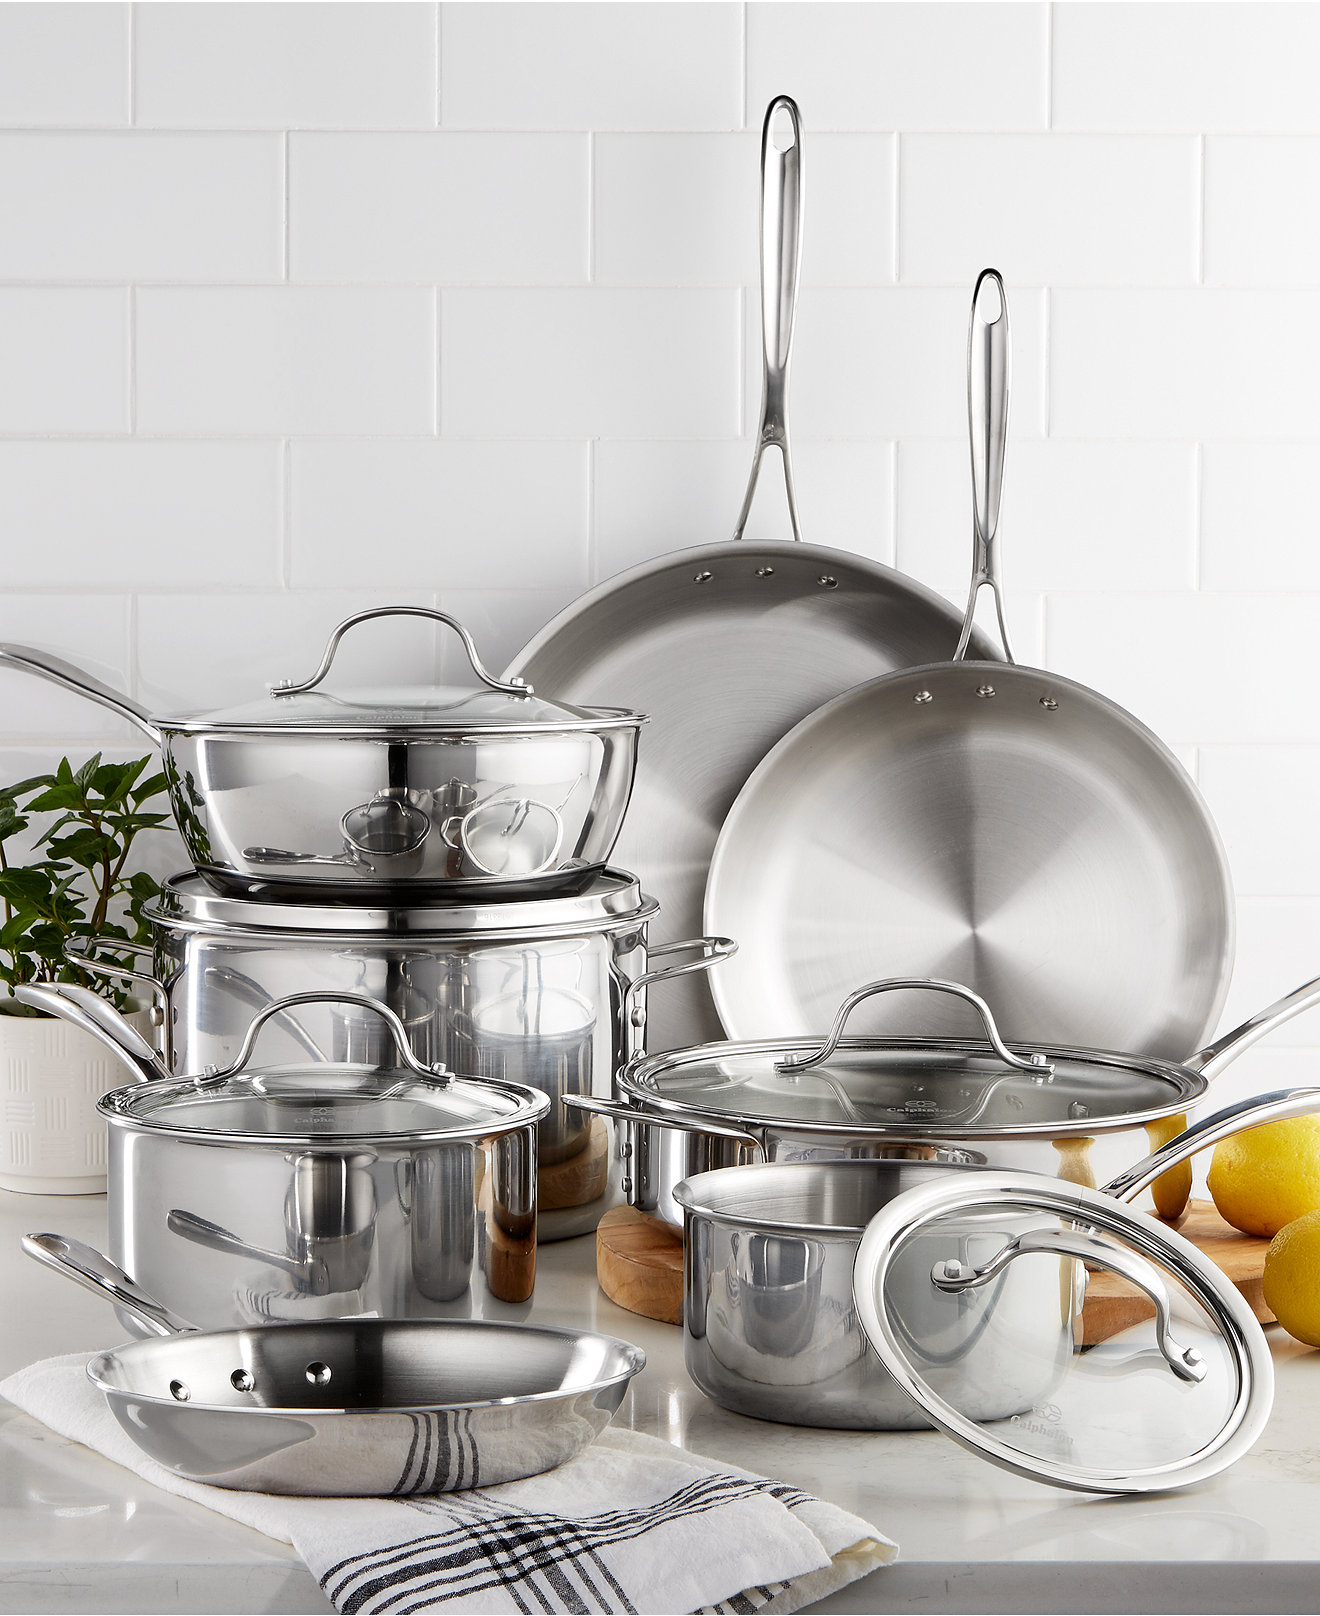 Calphalon Tri-Ply Stainless Steel 13-Pc. Cookware Set - Cookware ...